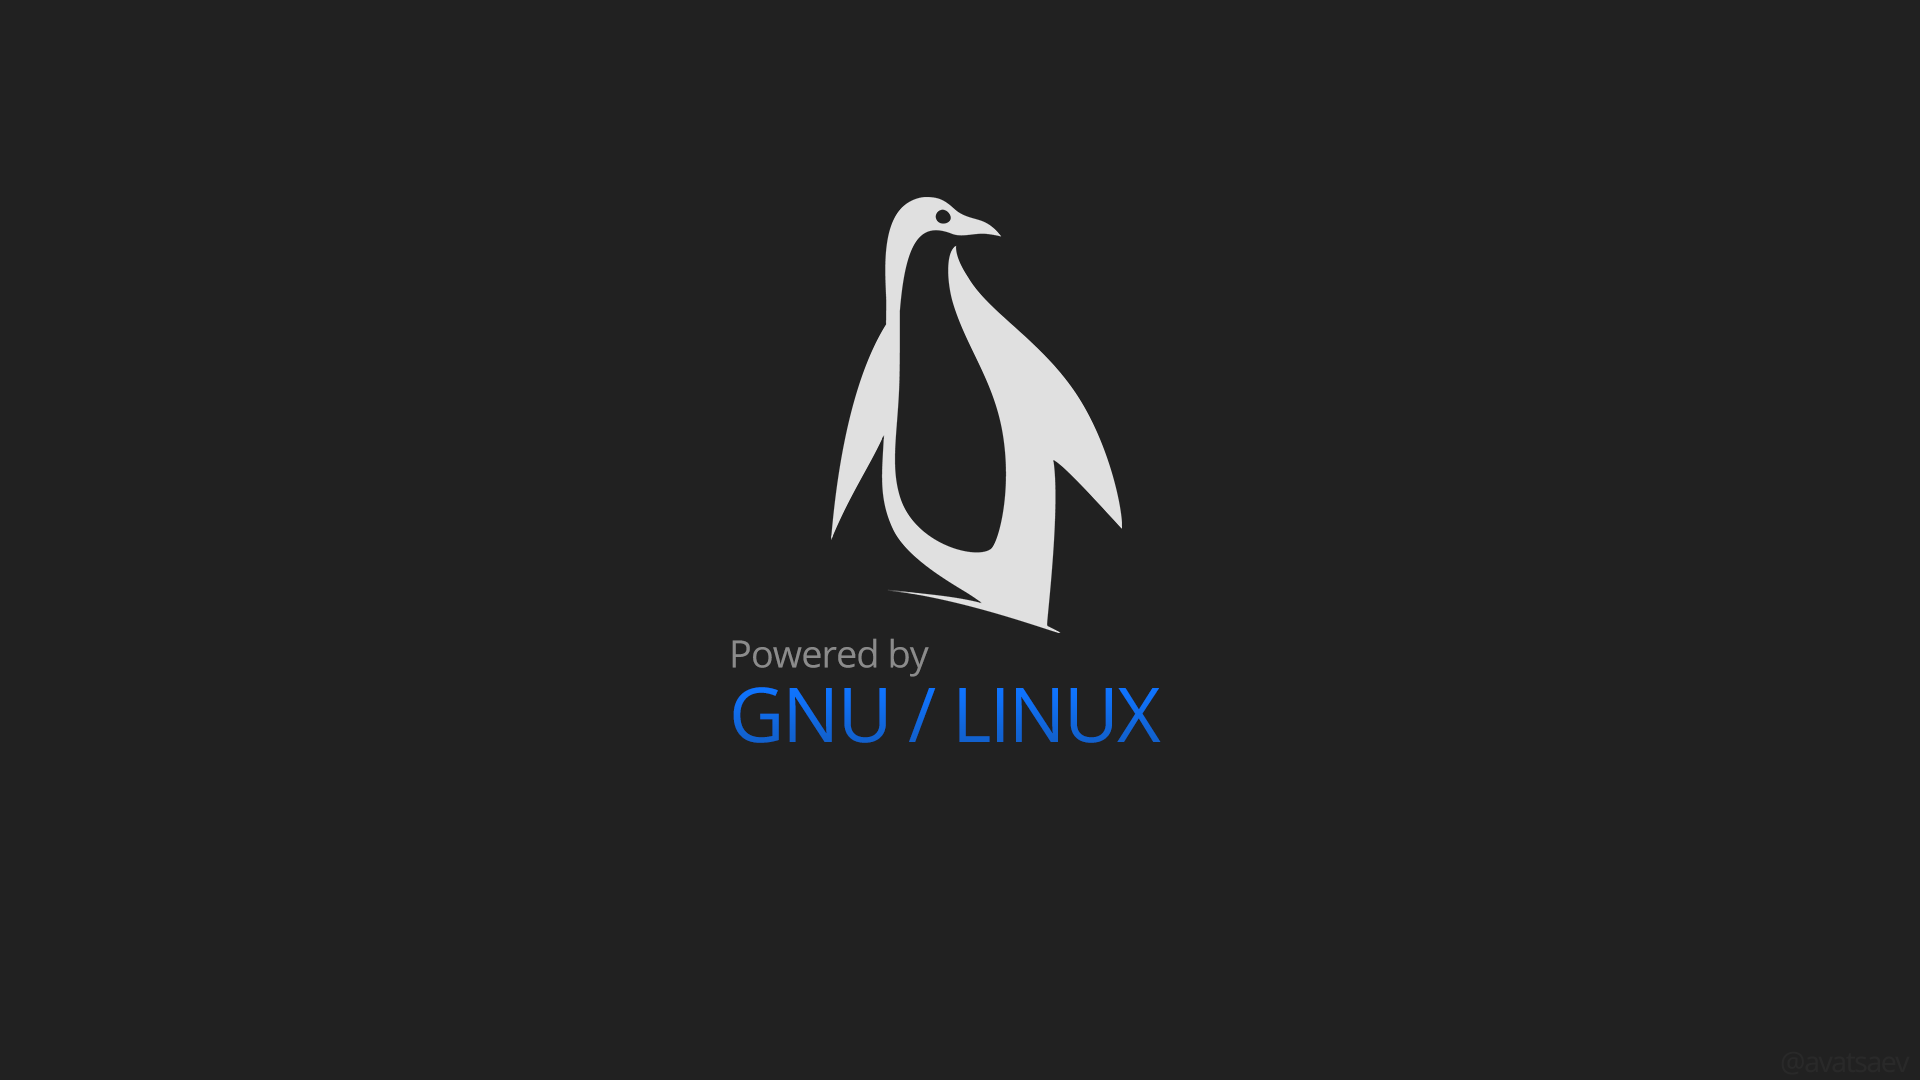 1920x1080 41 Amazing Linux Wallpaper/Backgrounds In HD